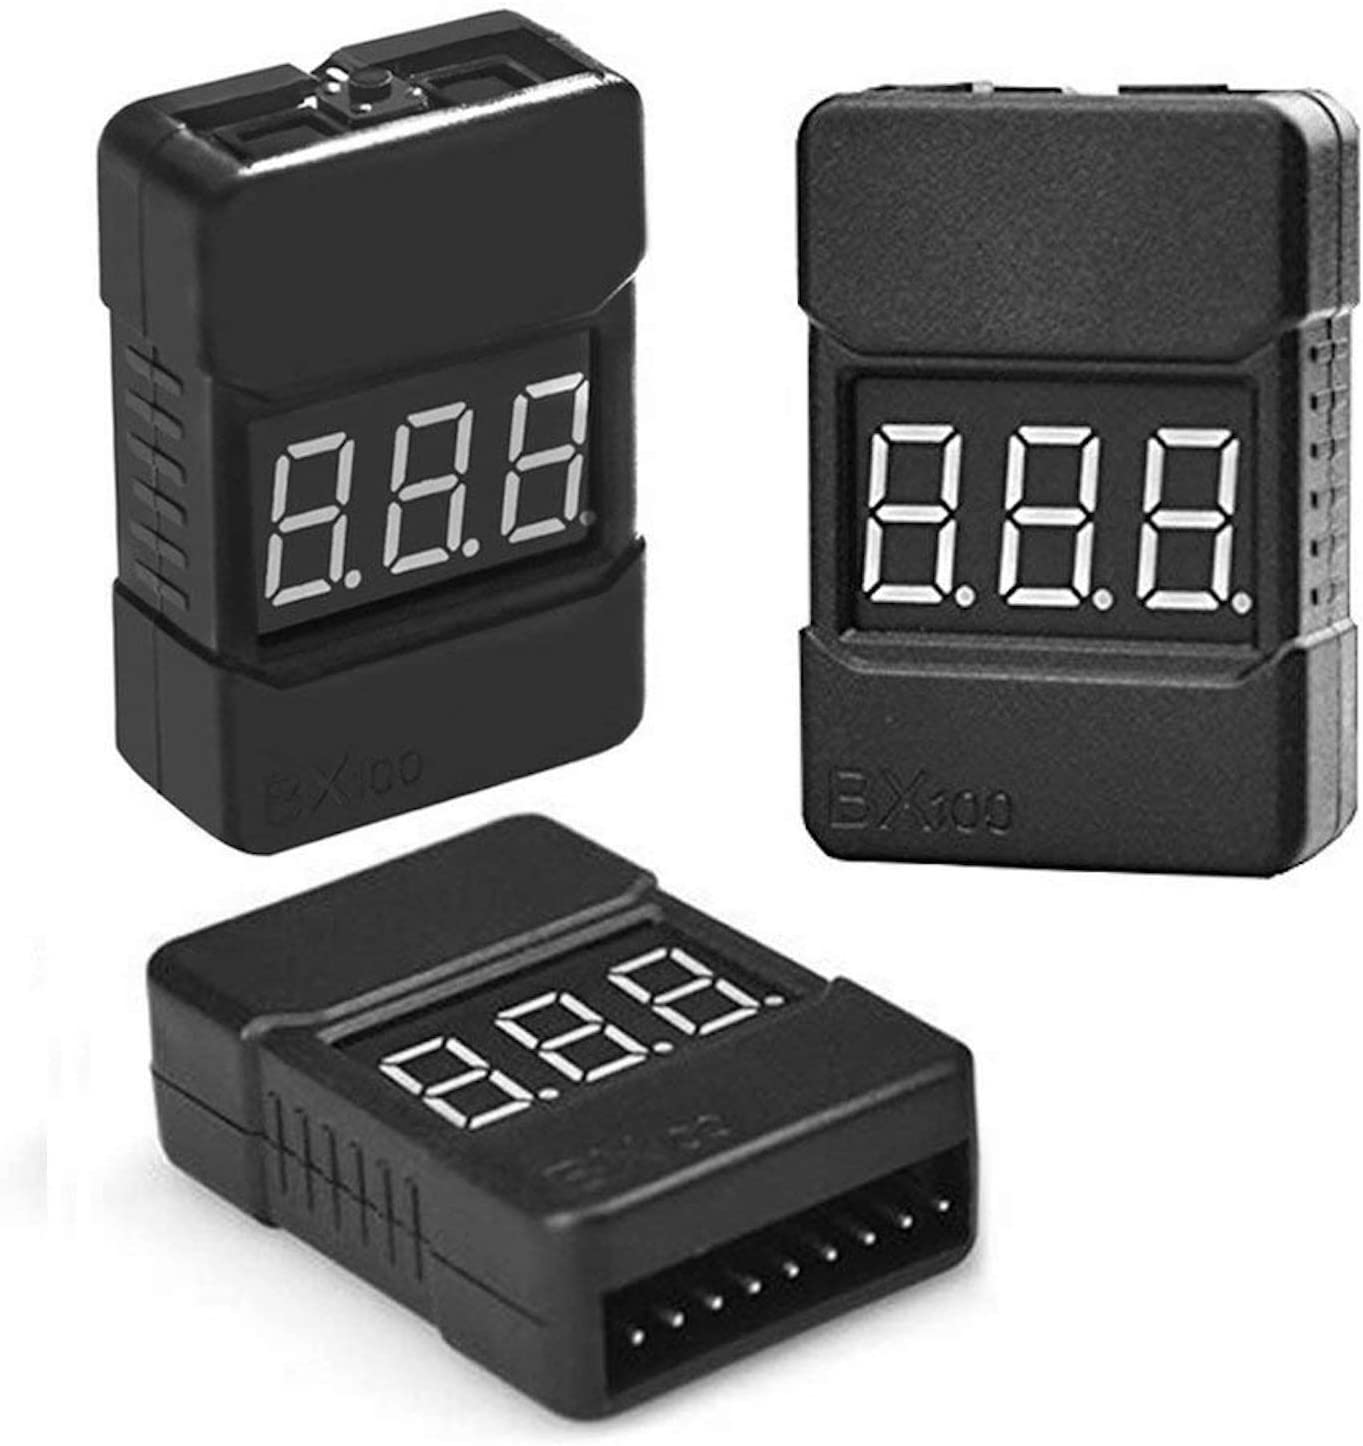 LiPo Industry No. 1 Battery Checker - RC Volt Low Tester 1-8S Monitor Memphis Mall